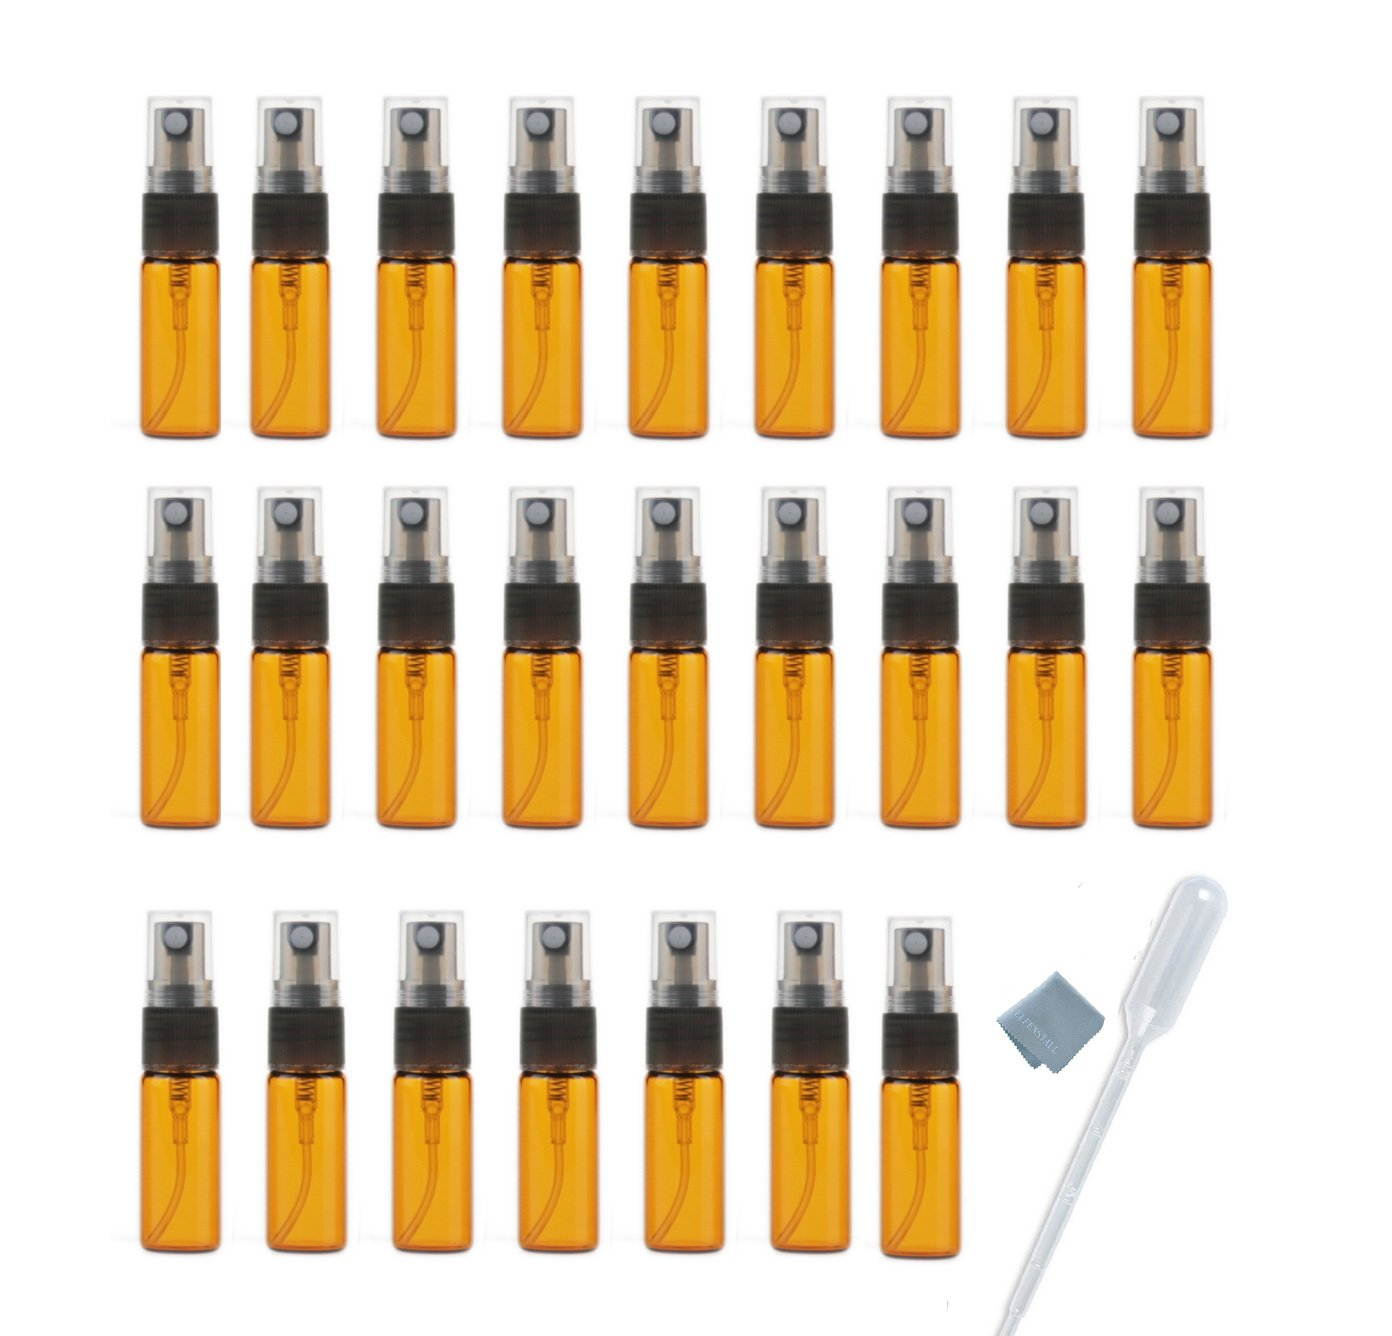 ELFENSTALL- 20pcs Amber 5ml 1 6oz Atomizer Vial Glass bottle Spray Refillable Perfume Empty Fine Mist Sample Bottle Clean Cloth Free 3ML Pipette for Travel Party